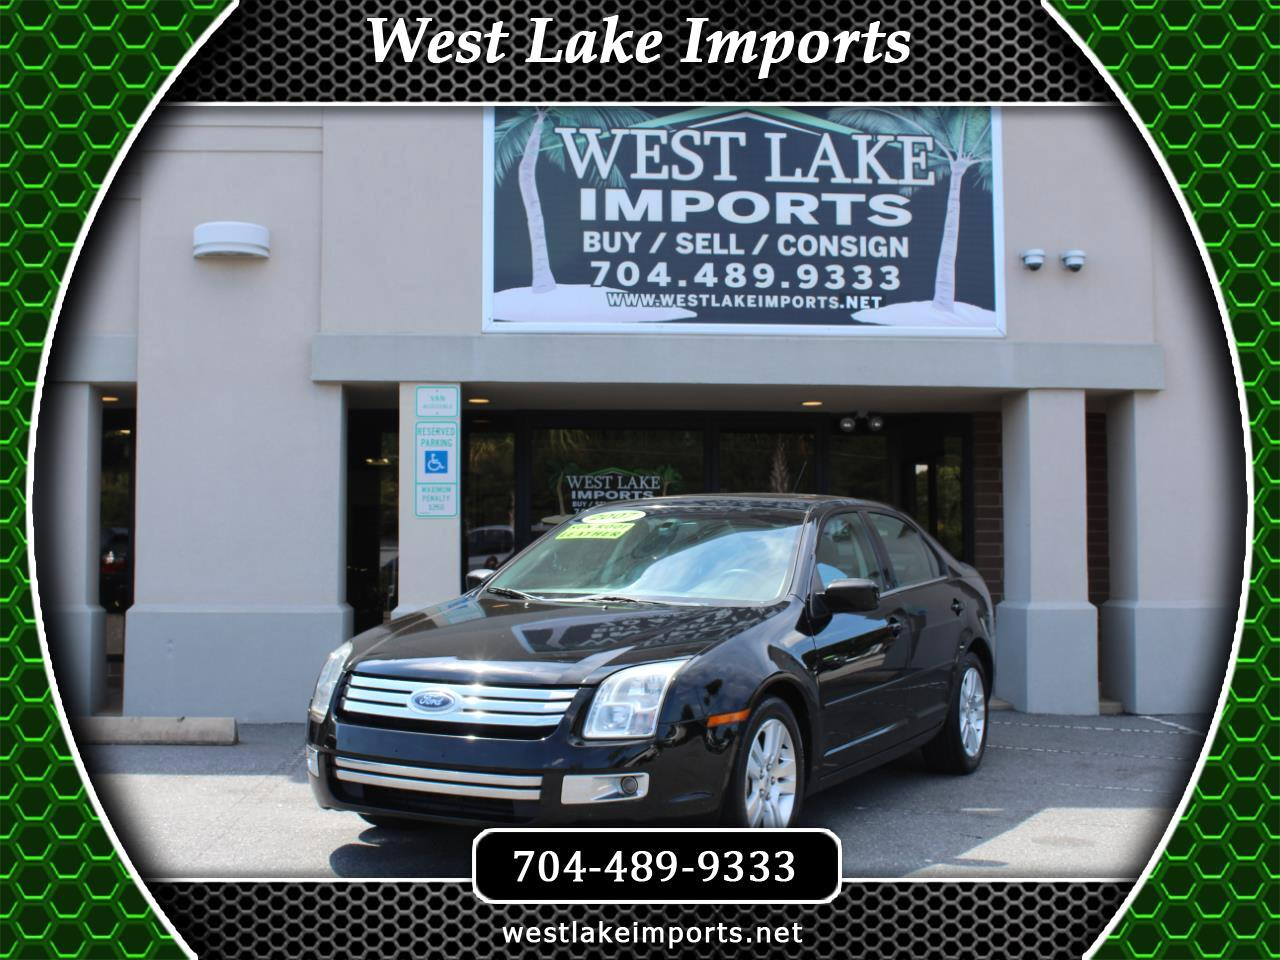 2007 Ford Fusion 4dr Sdn I4 SEL FWD